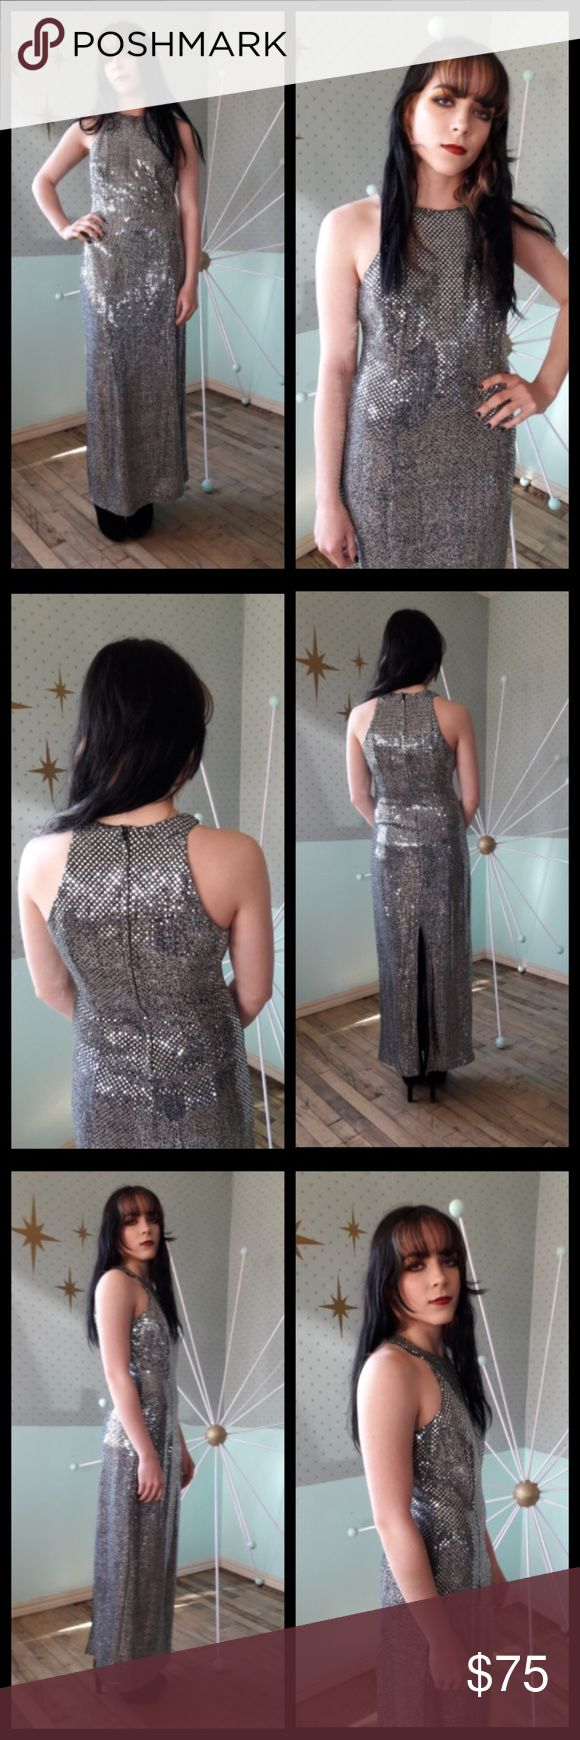 Gorgeous! Vintage 80's silver sequin maxi dress! Beautiful silver sequin maxi by All That Jazz circa 1980's! Dress is lightweight and easy to wear and has some stretch. Made from reflective mirror sequin mesh. Zipper back with slit. Shows off shoulders! Vintage size 9/10 but please see measurements for sizing:  Pit to pit: 17 inches  Waist: 14 inches Hip: 19 inches Length: 53 inches   All measurements taken lying flat 💖 Vintage Dresses Maxi